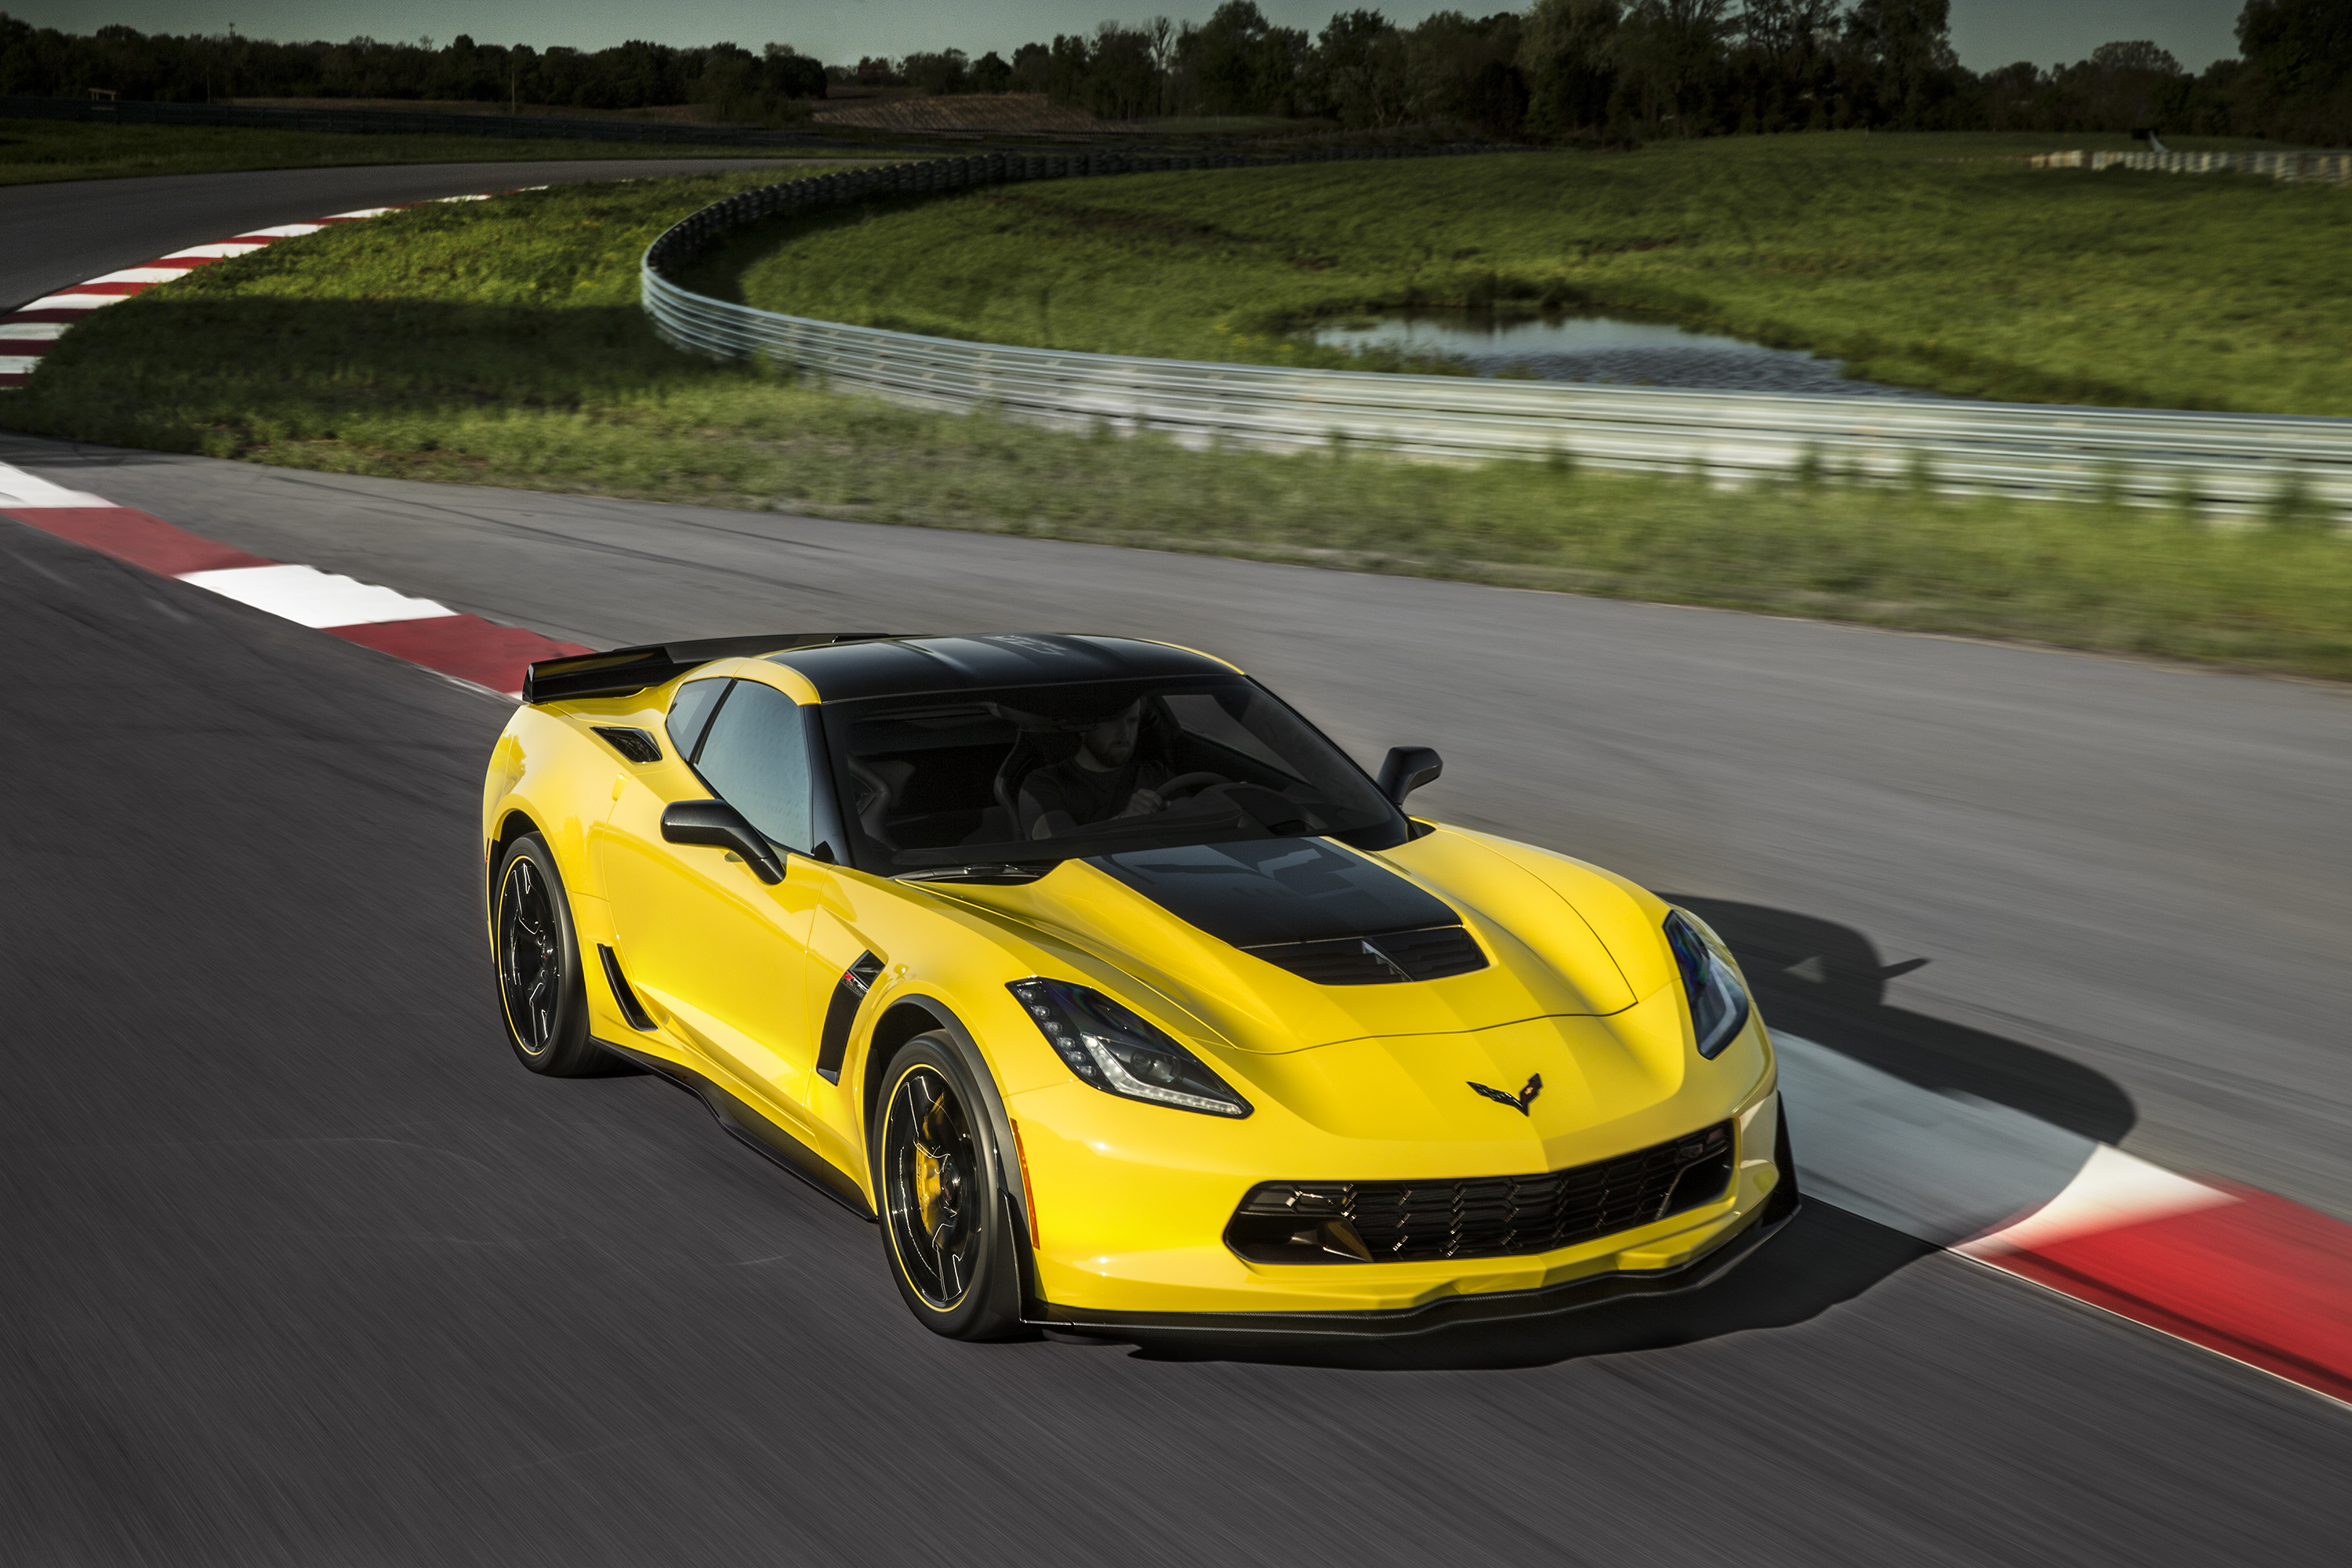 CORVETTE Z06 C7.R EDITION PAYS TRIBUTE TO RACING LEGACY ...